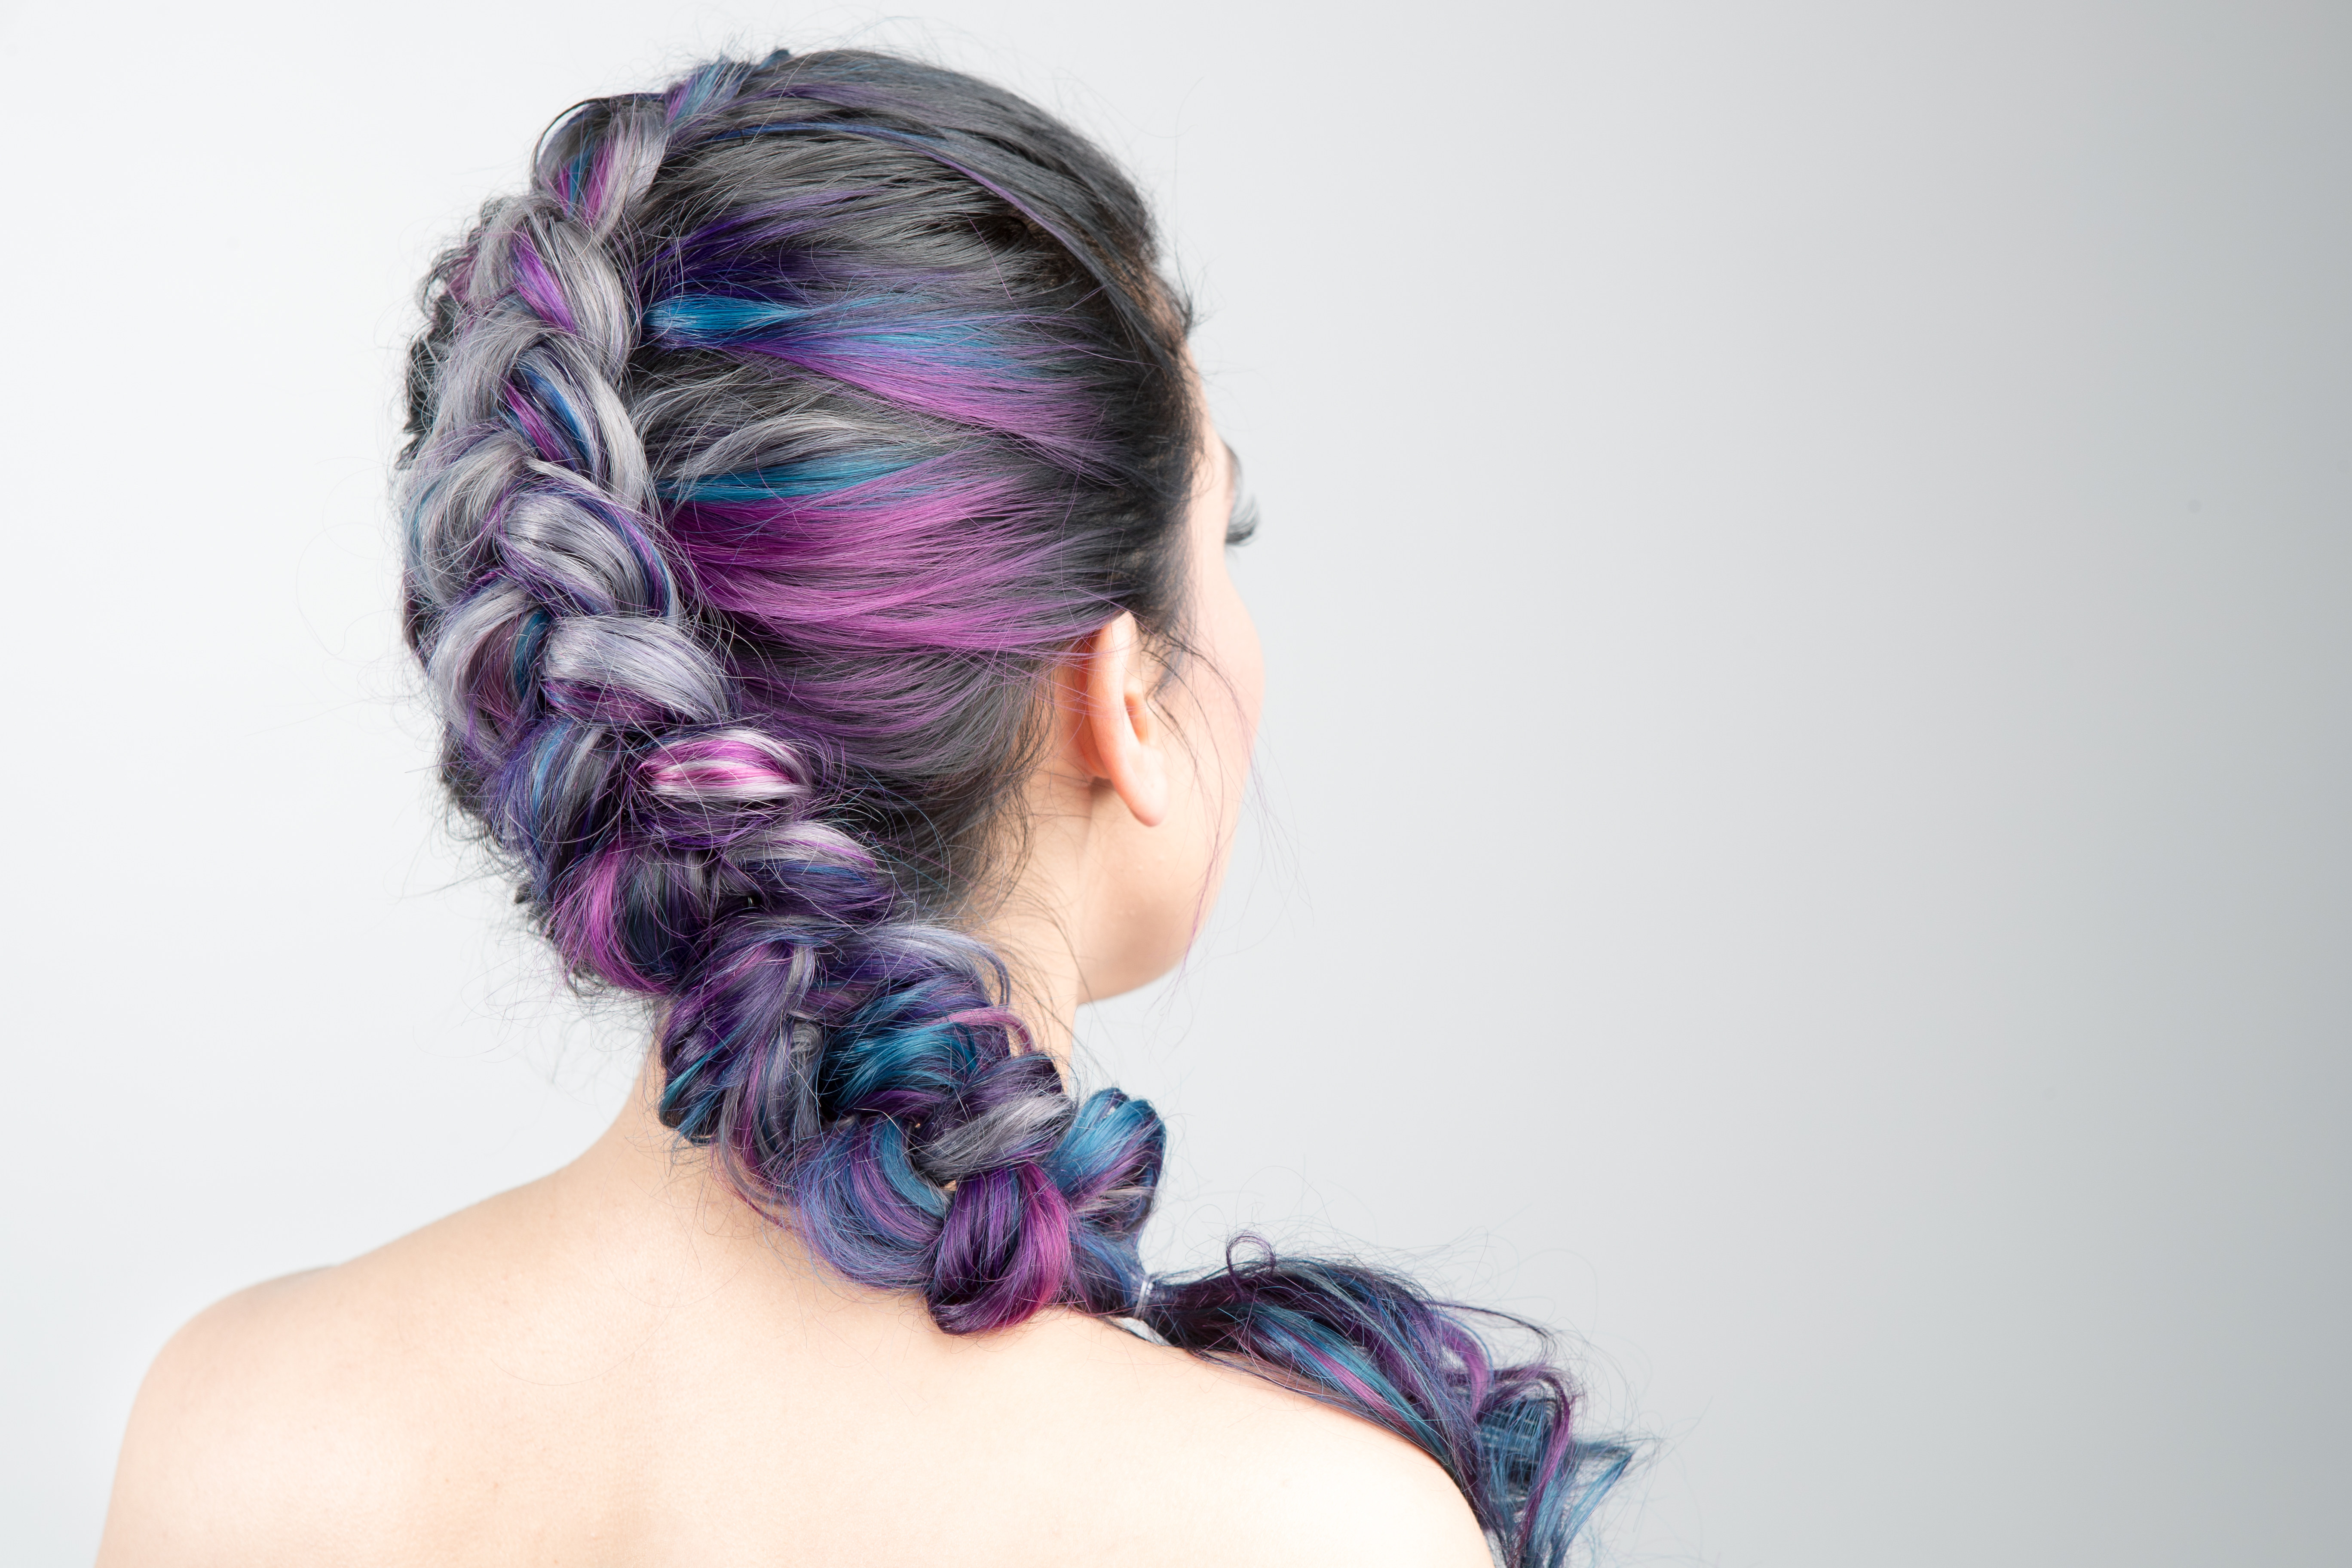 Back view of a long hair style swept up in a braid. Hair is mostly silver with blue and purple streaks mixed at the ends.